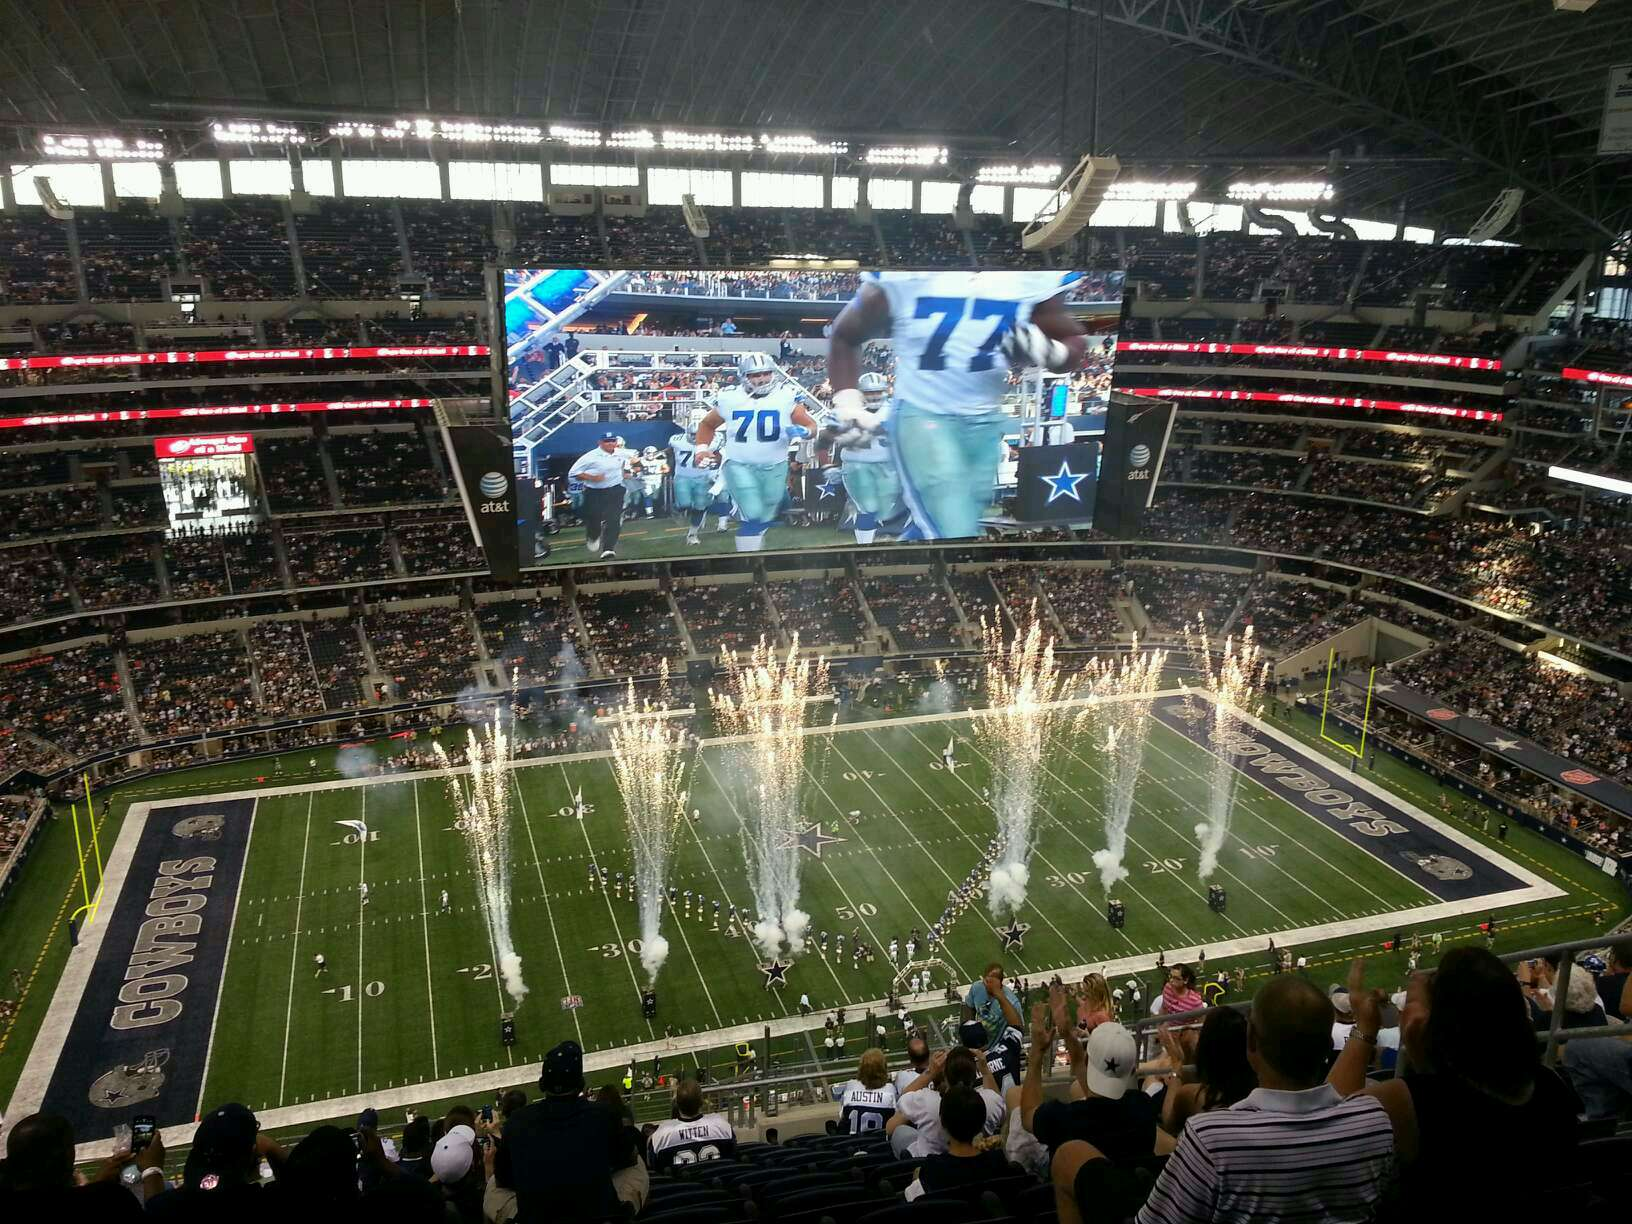 Cowboys Blog - Are You Ready To Get Loud, Cowboys Fans? 1